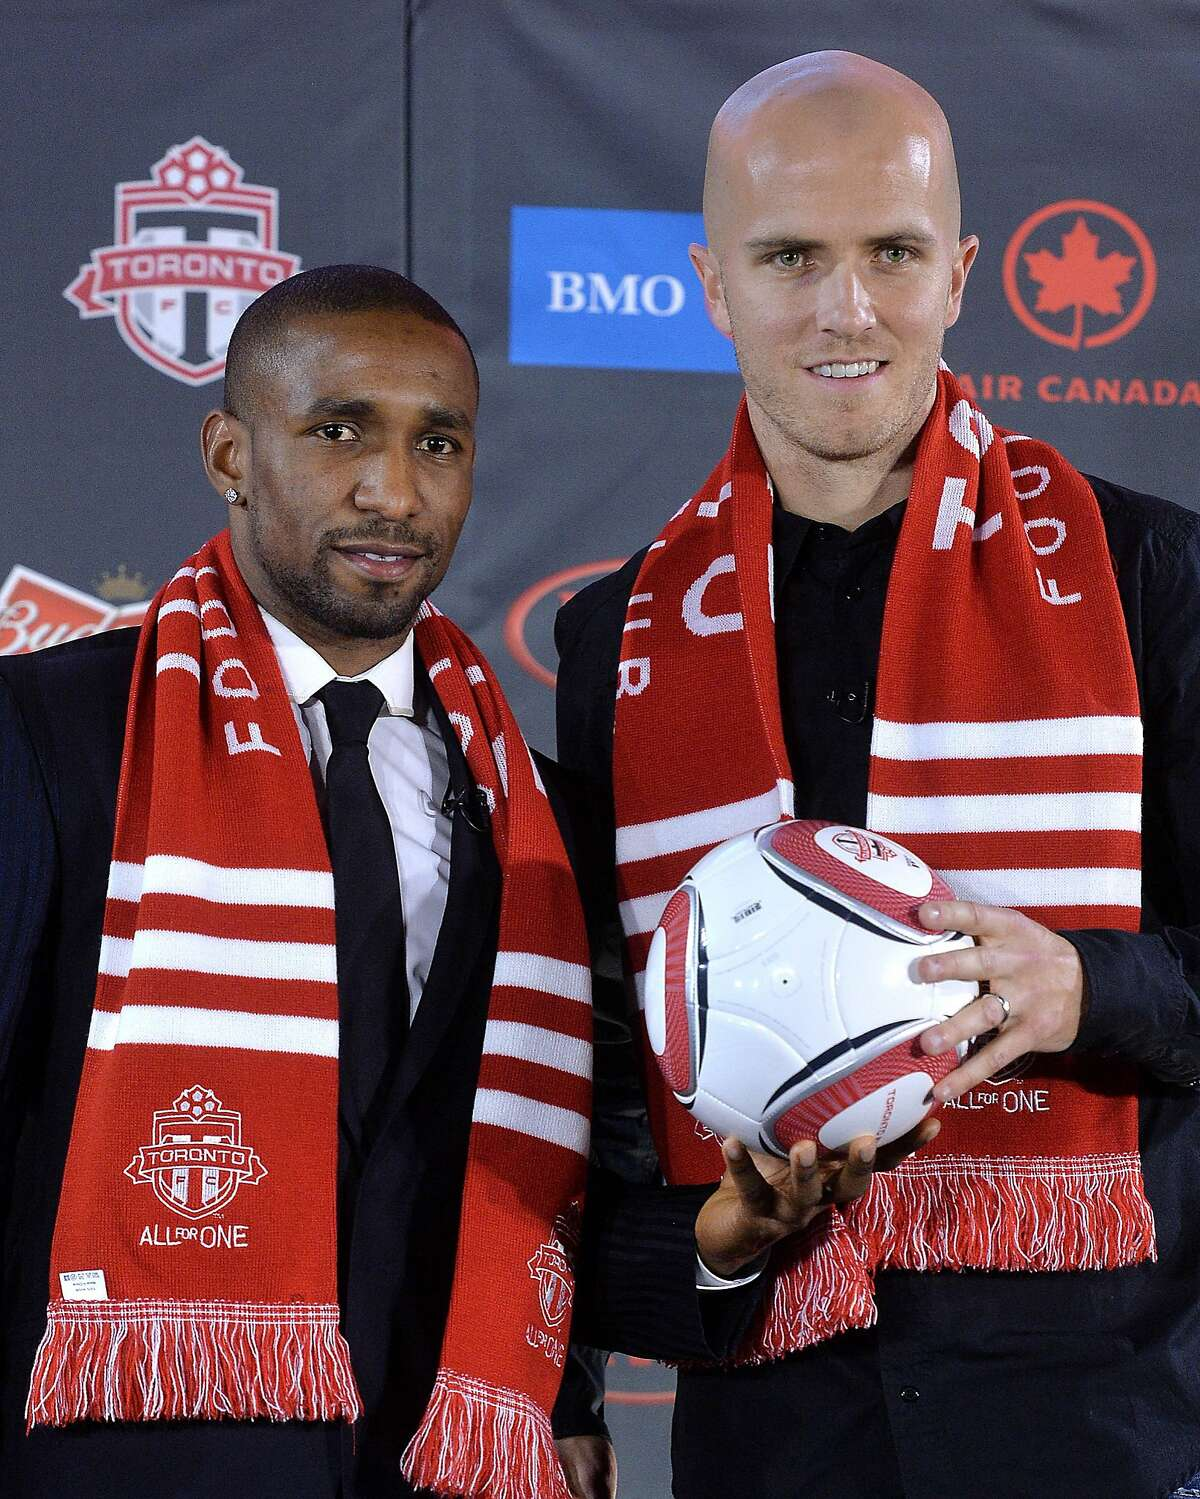 TORONTO, ON - JANUARY 13: Jermain Defoe (L) and Michael Bradley attend a press conference where they were introduced by Toronto FC at Real Sports Bar & Grill on January 13, 2014 in Toronto, Canada. (Photo by Jag Gundu/Getty Images)